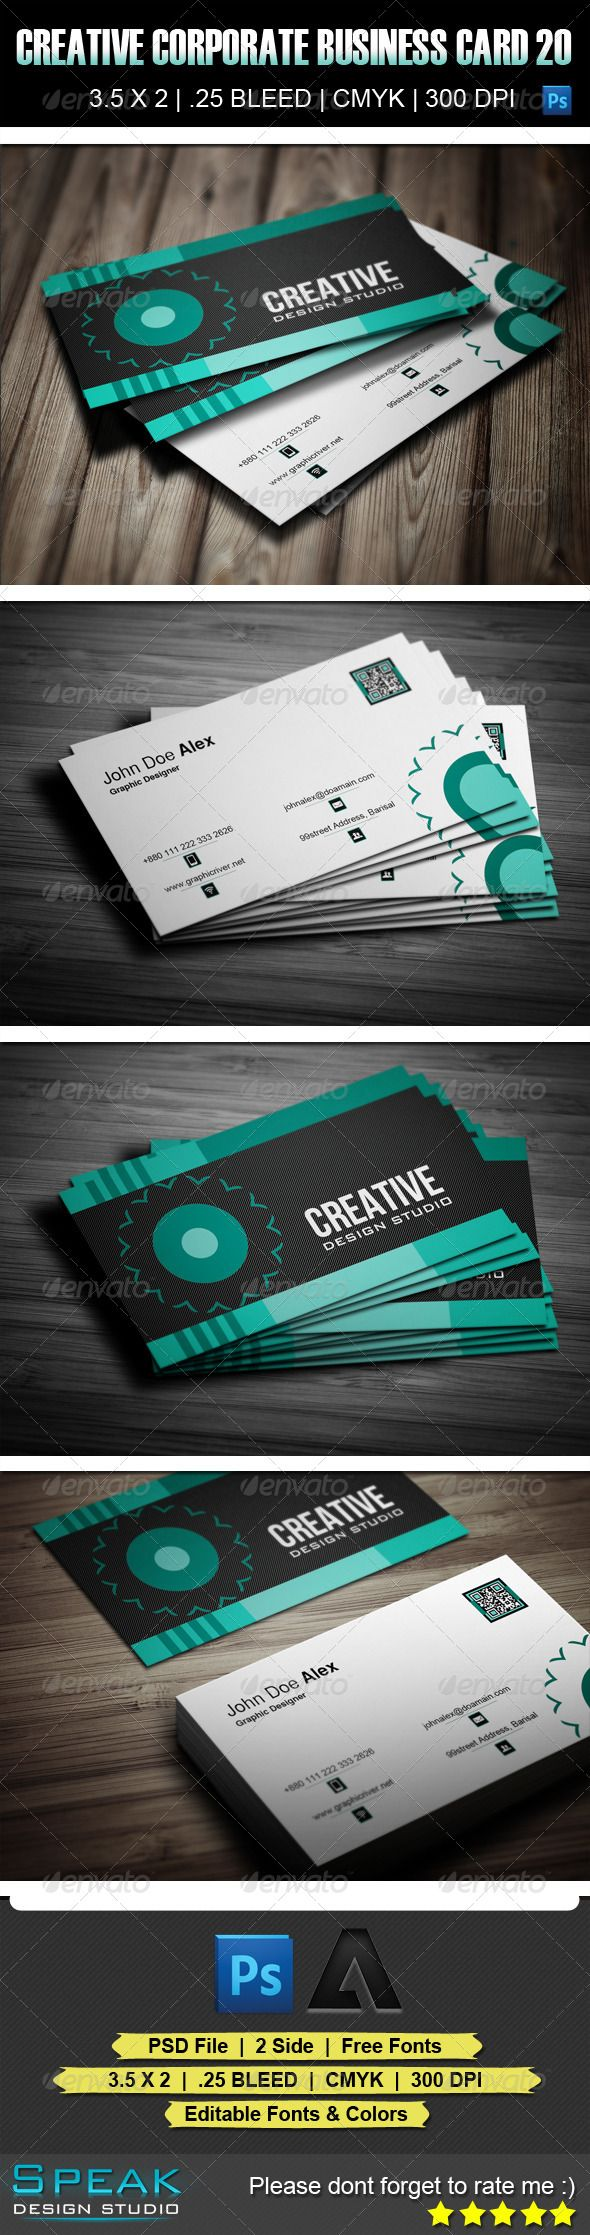 34 best cdr images on Pinterest | Print templates, Business cards ...